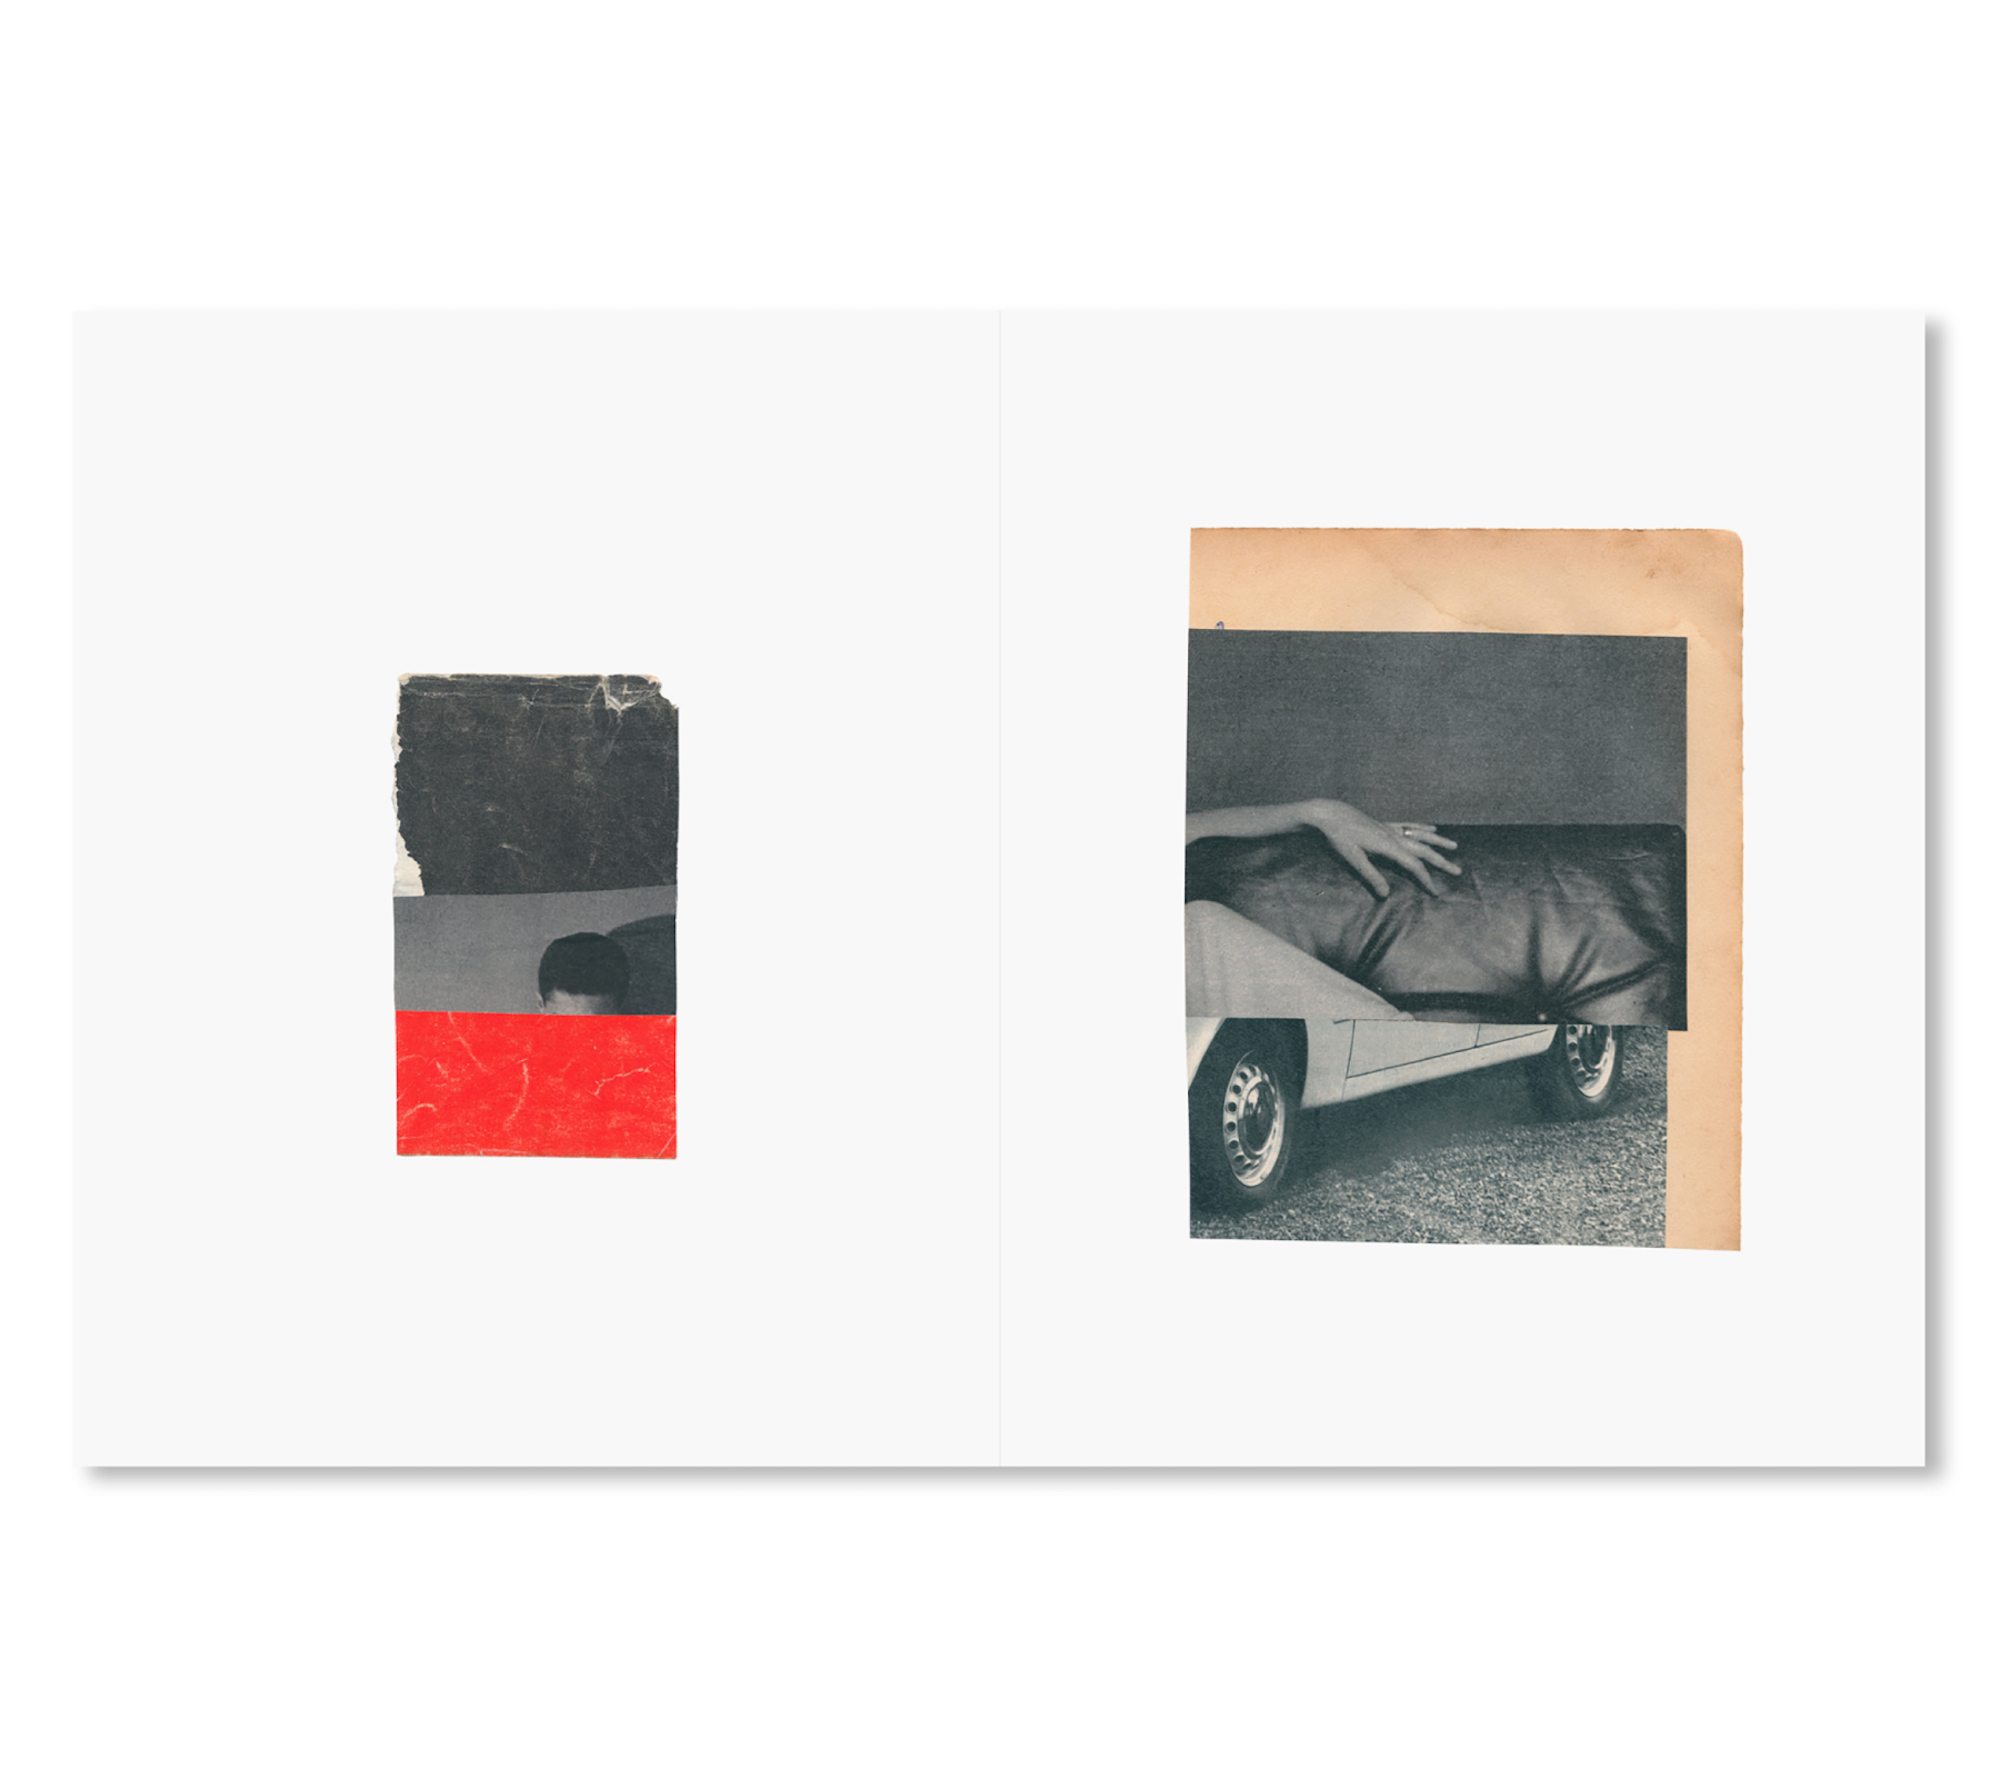 Katrien De Blauwer 「WHY I HATE CARS」